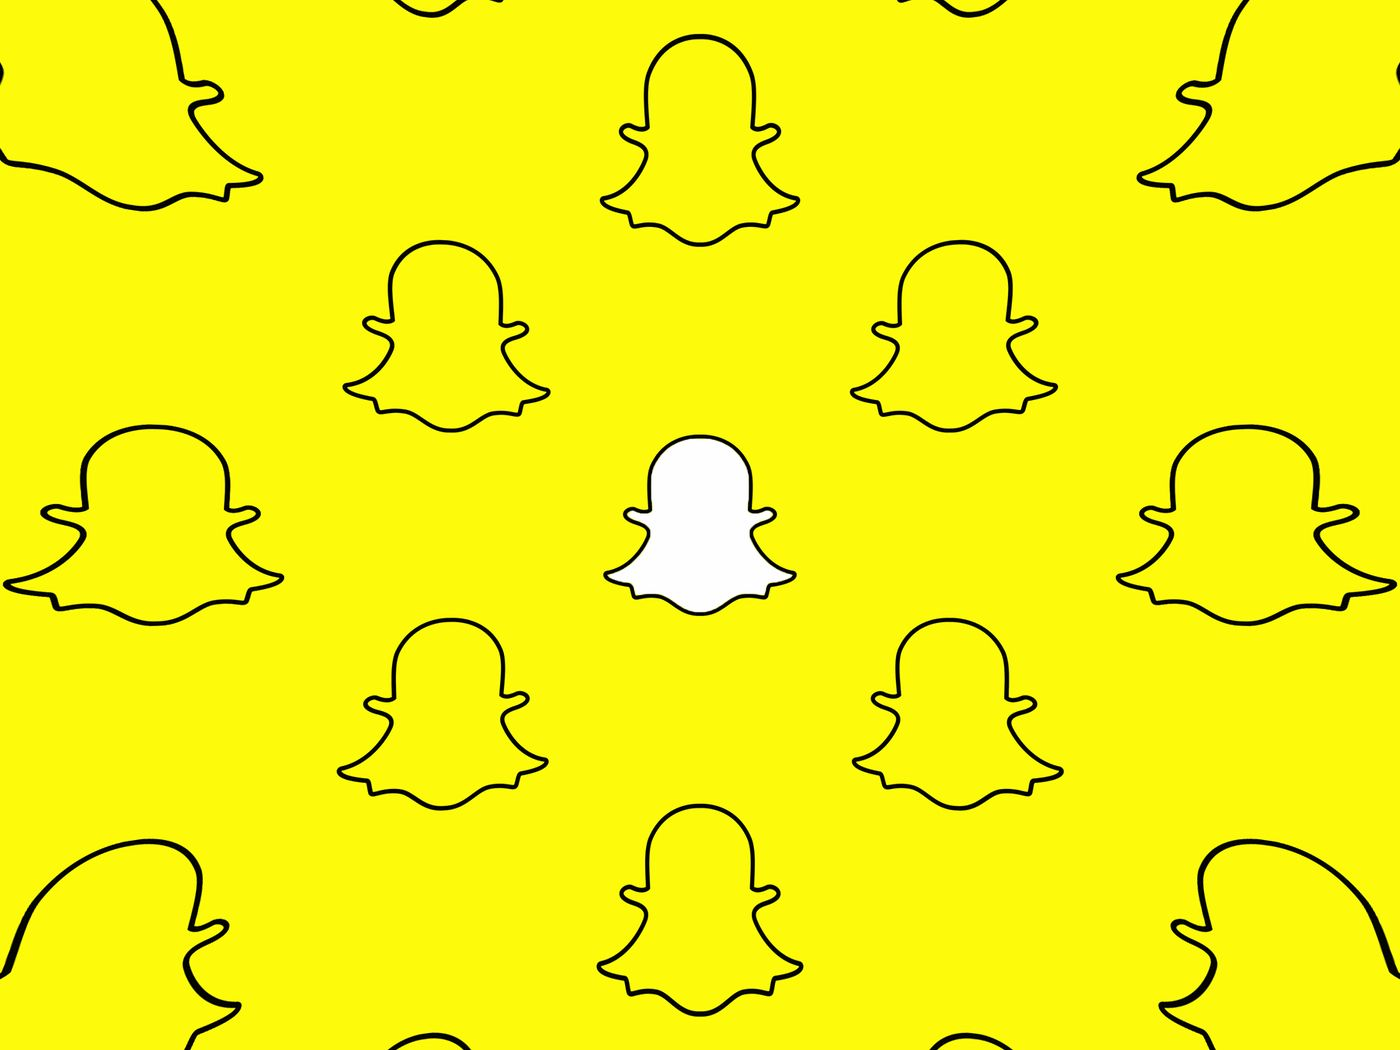 15 ways to get someone's attention on snapchat